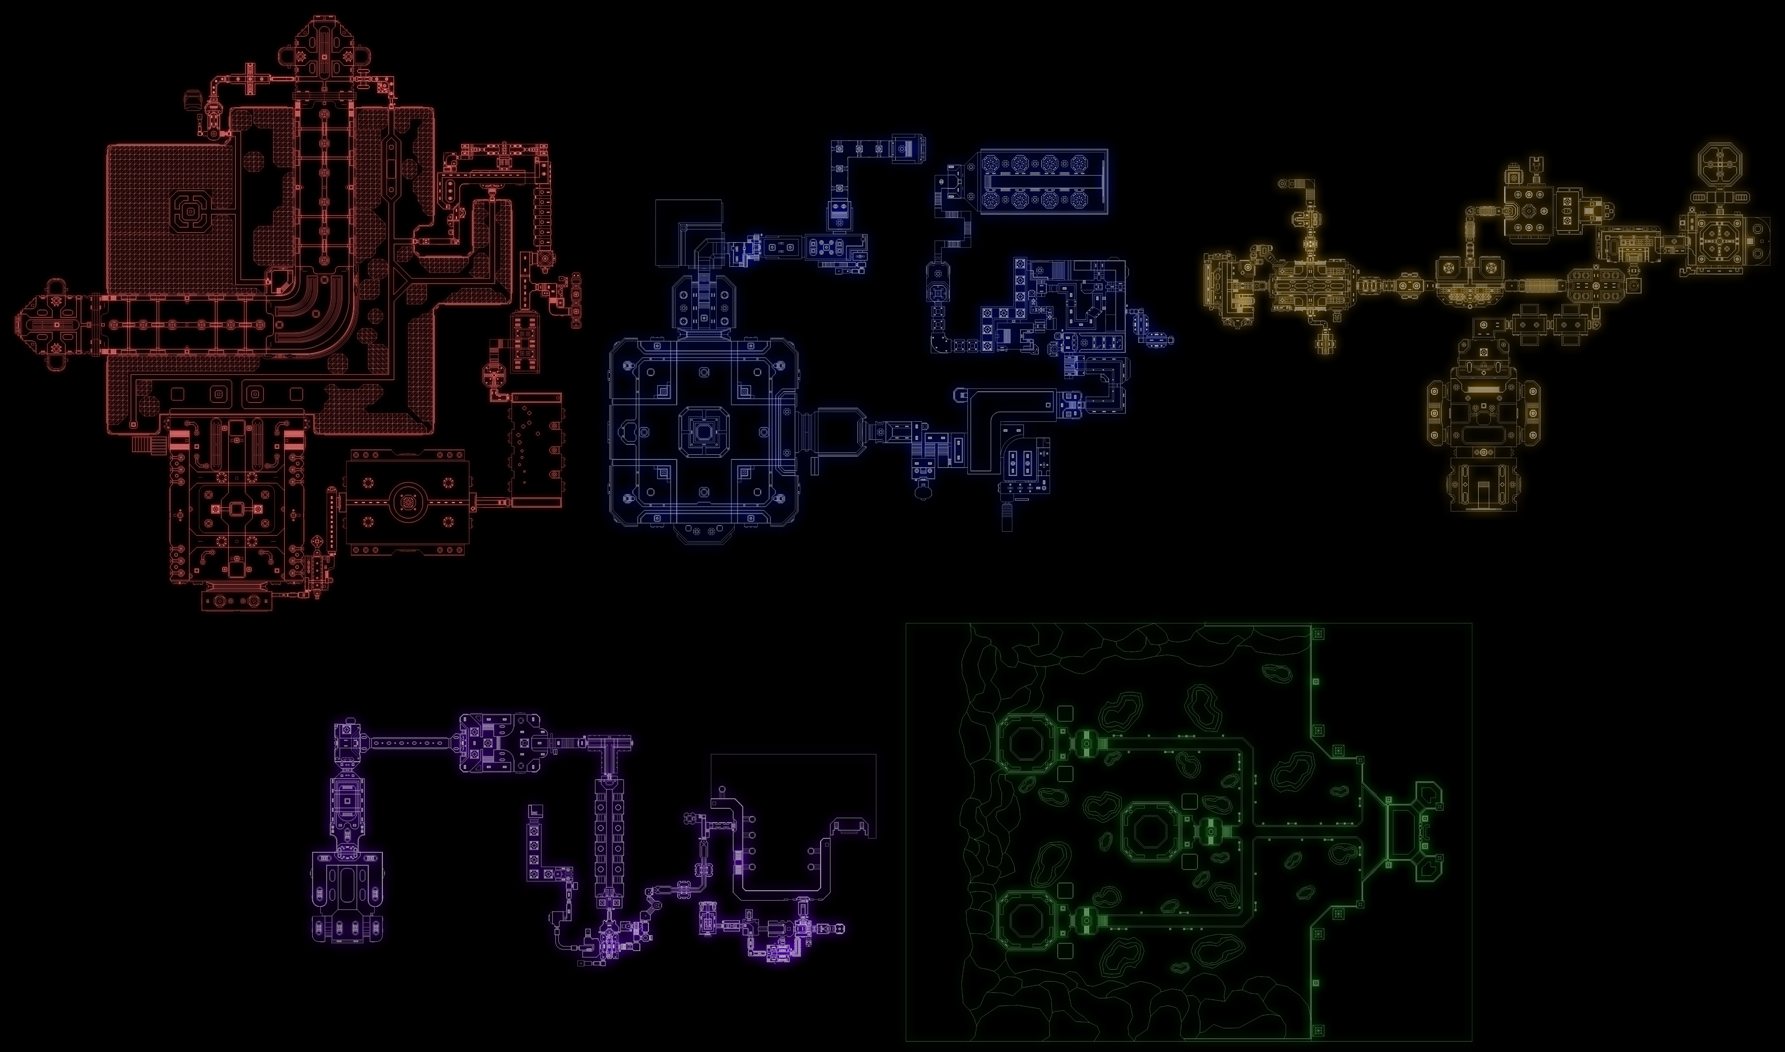 From left to right: Baerhon's Lair Part 1, Baerhon's Lair Part 2, Rarlocan Main Base, Onerium's Lost Section, Oner-7 Portal Hub.